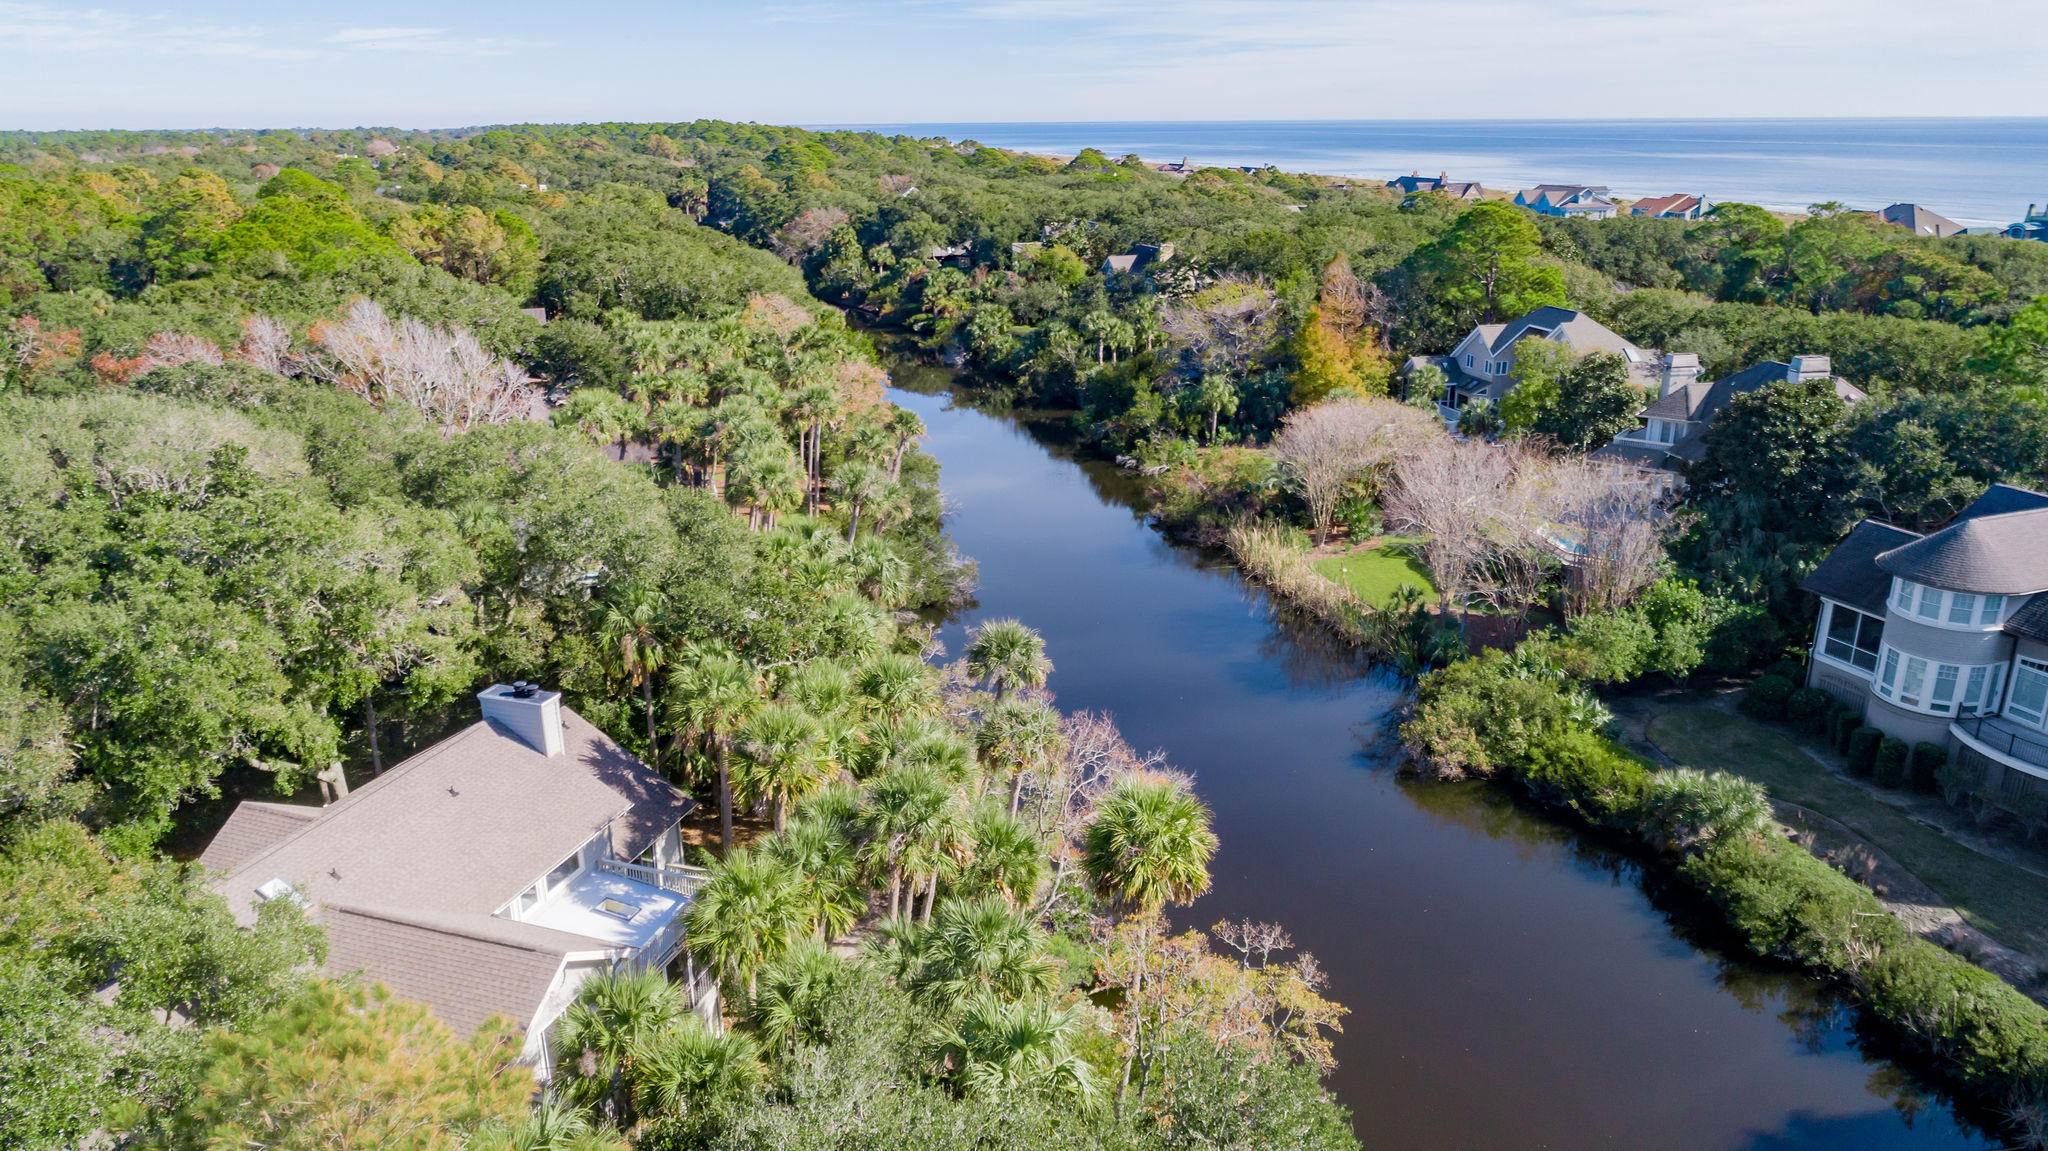 Kiawah Island Homes For Sale - 205 Glen Abbey, Kiawah Island, SC - 2